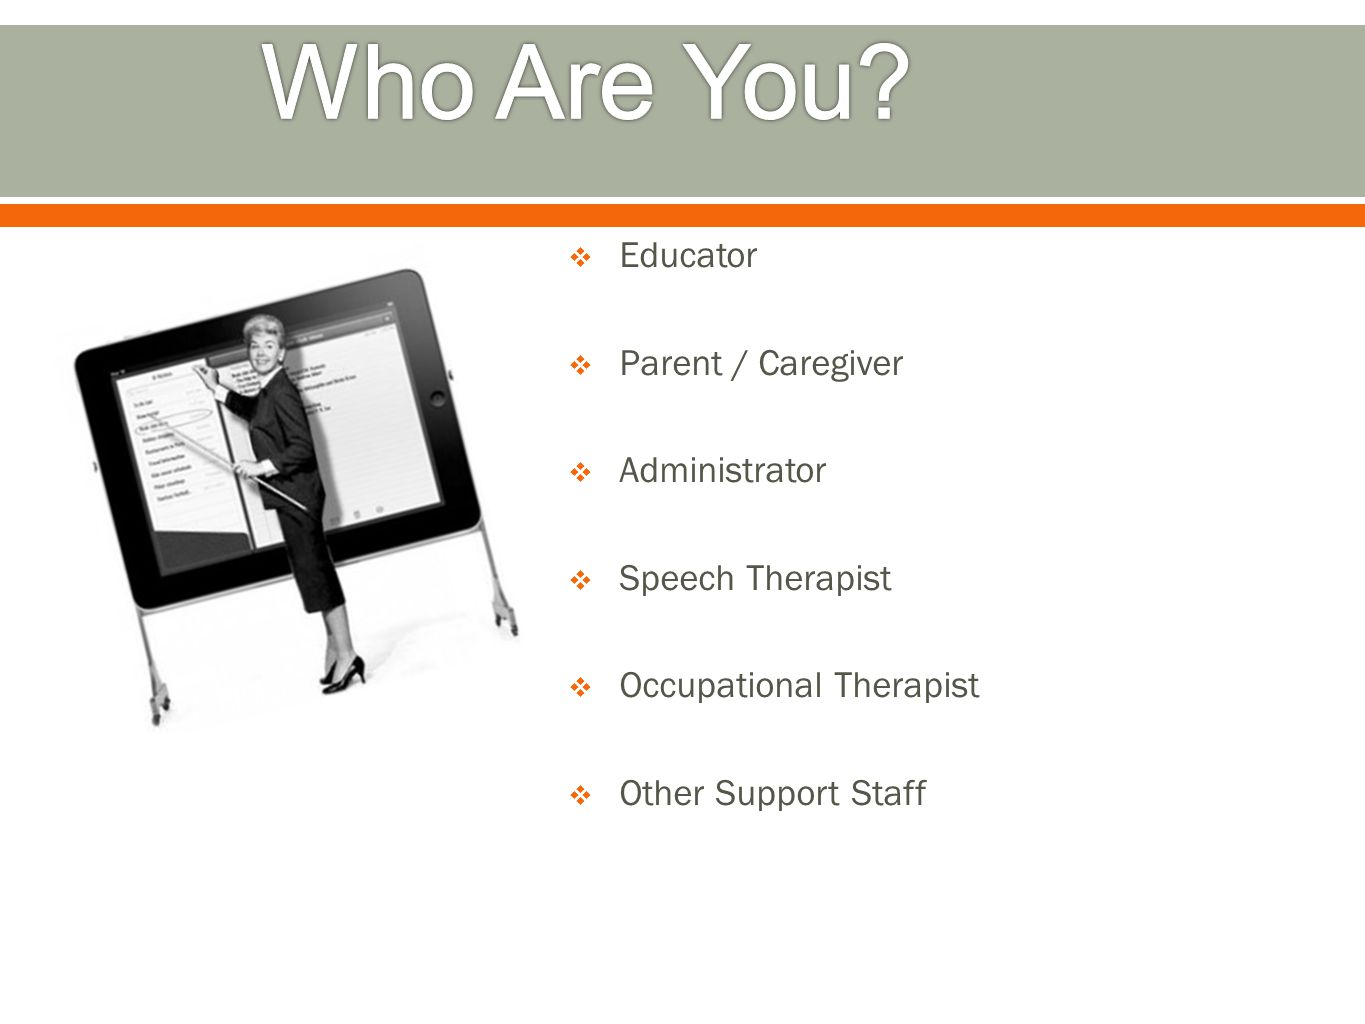  Educator  Parent / Caregiver  Administrator  Speech Therapist  Occupational Therapist  Other Support Staff